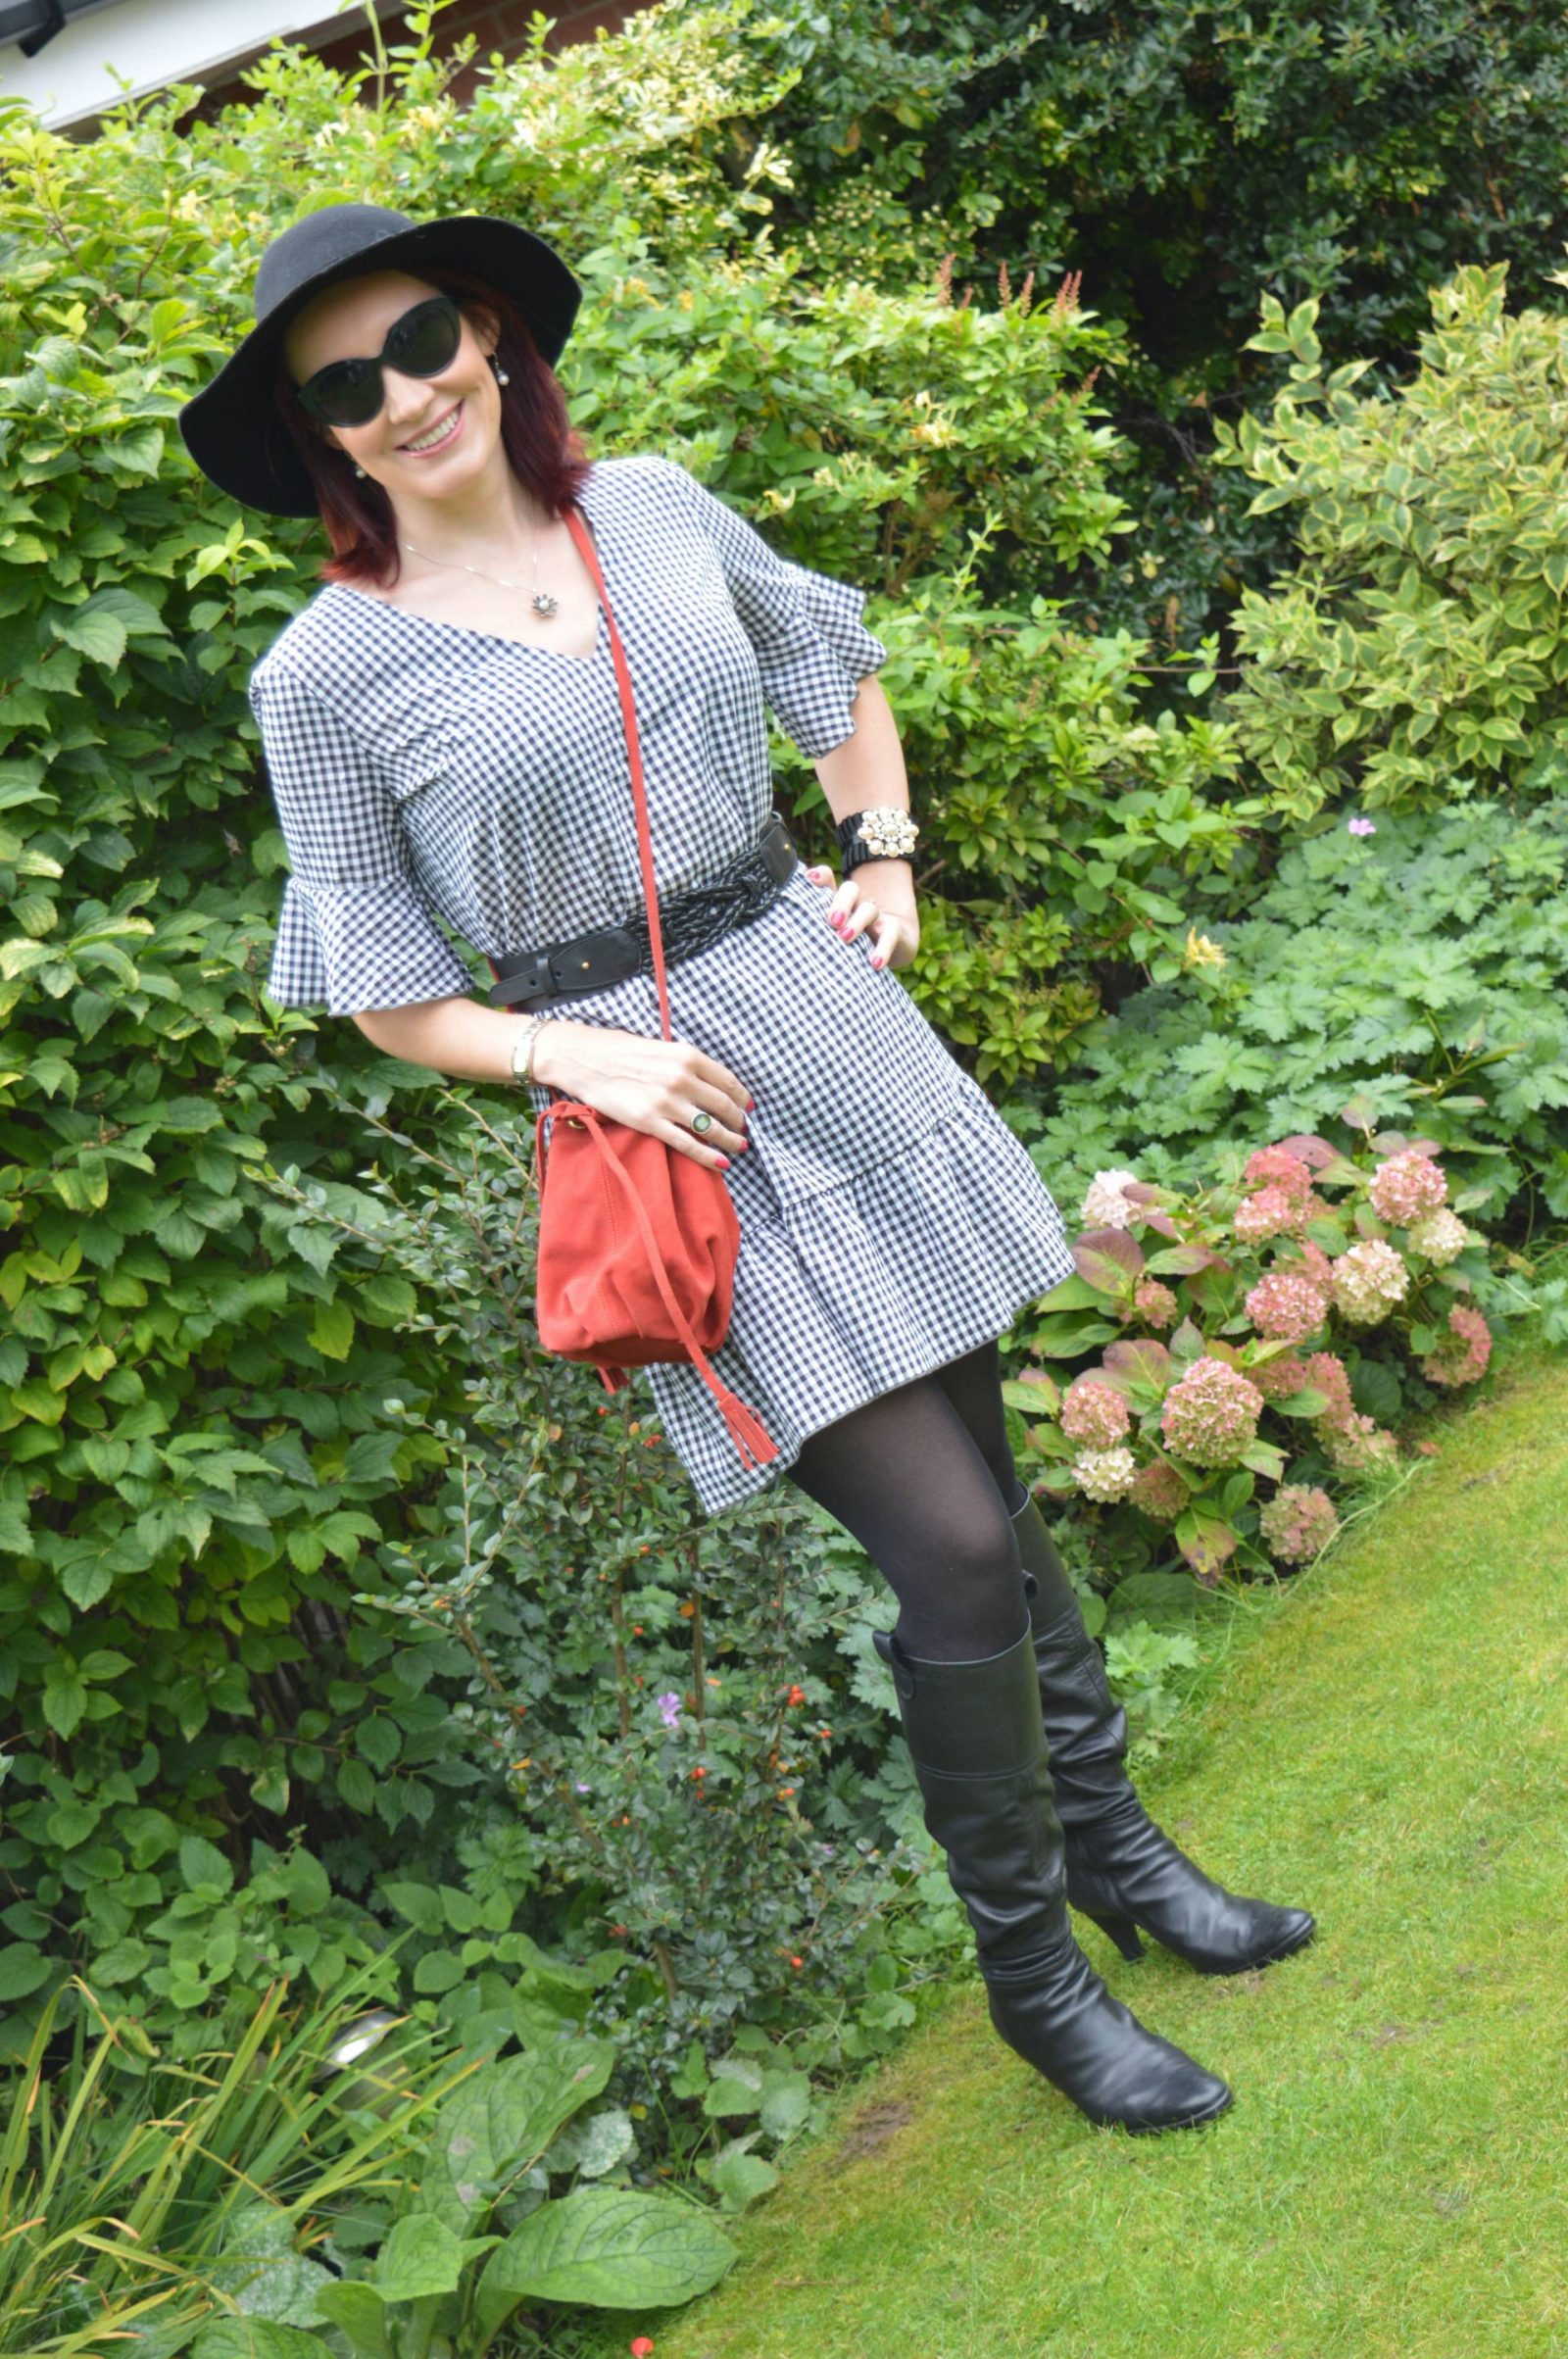 Matching Gingham Dresses and Boots